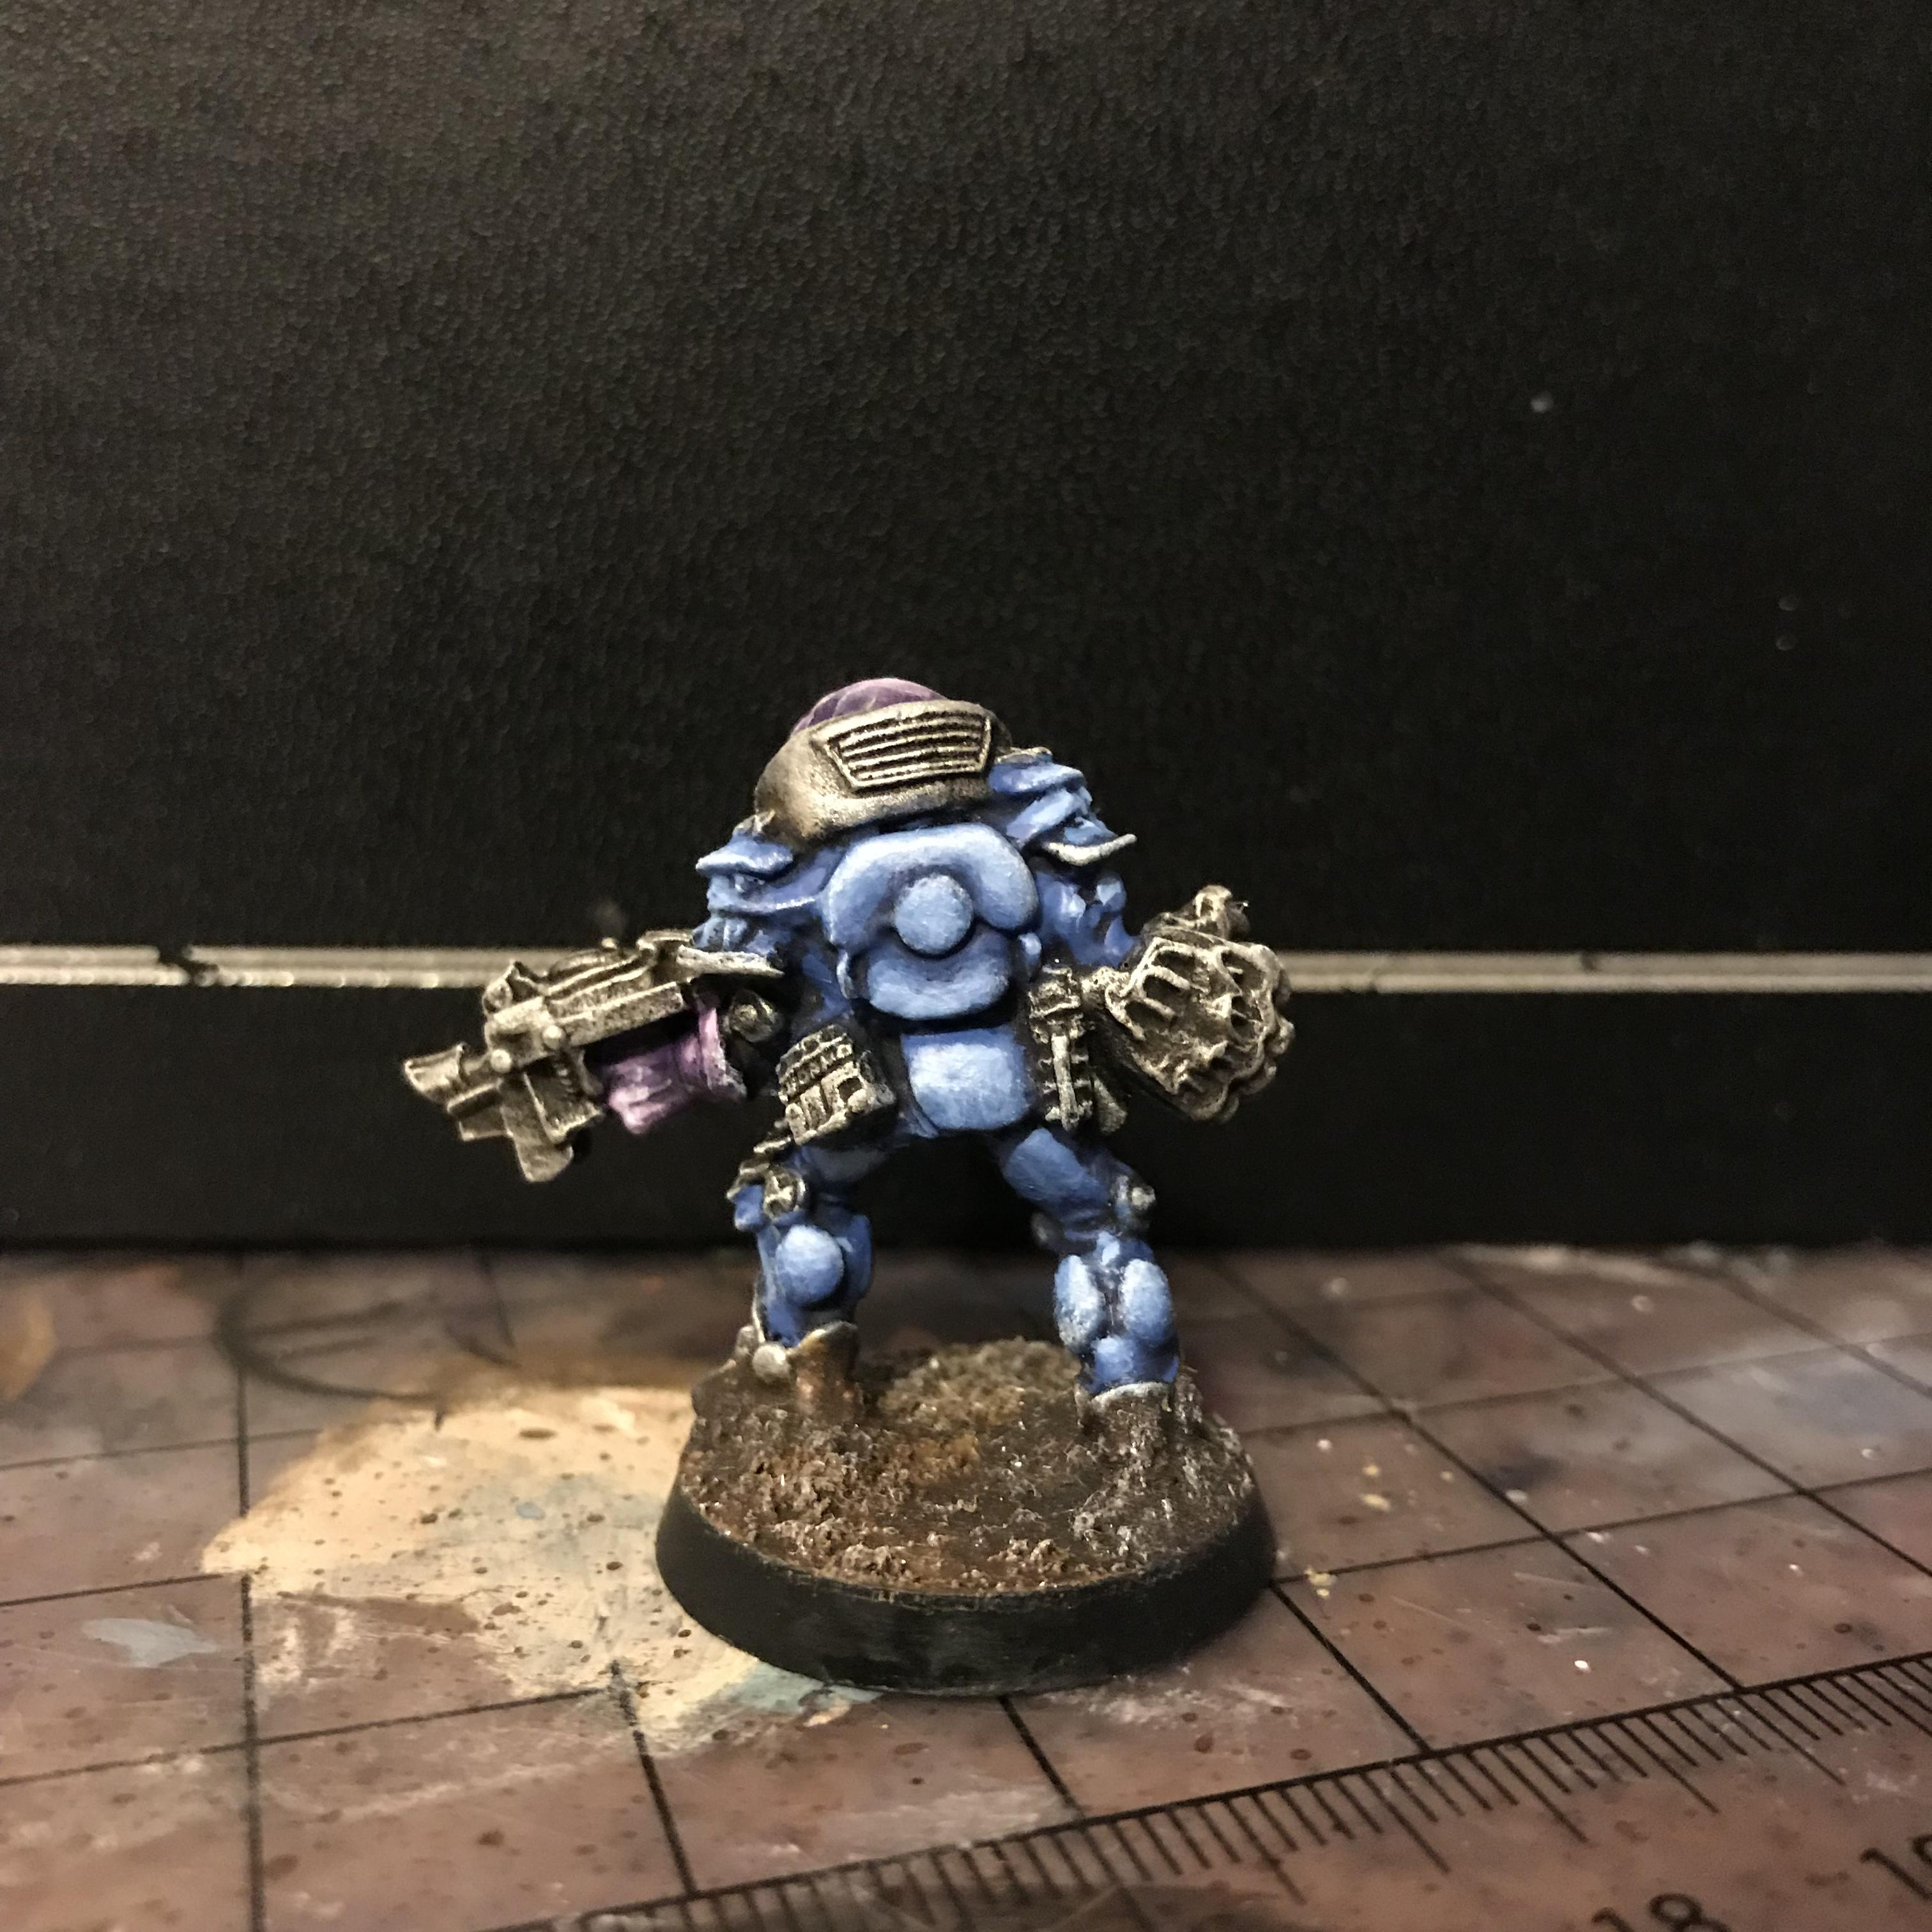 117, 2nd, 41st, Acolytes, Adeptus, And, Armor, Astartes, Badab, Battle, Black, Blade, Blue, Bolters, Boltguns, Bounty, Brother, Brothers, Brutal, C100, Captain, Chaos, Chaotic, Chapter, Chapters, Combi, Combi-bolter, Combi-disintegrator, Combi-weapon, Corsairs, Daemonhunter, Damned, Dark, Darkness, Deep, Demonhunter, Disintegrator, Eye, Far, Fj, Founding, Future, Gate, God, Gods, Grim, Heavy, Heresy, Hobby, Horus, Human, Humans, Hunter, Imperial, Imperium, Inquisition, Inquisitor, Kaos, Kill, Legionaries, Legionnaire, Lord, Lost, Malal, Malice, Malleus, Man, Mankind, Millennium, Of, Oldhammer, Ordo, Ordos, Painted, Pirate, Pirates, Power, Power Armor, Power Armored, Powers, Psionic, Psyker, Purple, Pyro, Pyromaniac, Radical, Raiders, Realms, Recon, Red, Reference, Renegade, Renegades, Retro, Rogue, Ruinous, Runner, Second, Shadow, Slaves, Soldier, Space, Space Marines, Spartan, Spider, Spiders, Squad, Successor, Survivors, Sylo, Tannhäuser, Tannhauser, Team, Teams, Terror, To, Trader, Traders, Traitor, Trooper, Troopers, Troops, Unit, Ventolin, Veteran, Void, War, Warhammer 40,000, Warhammer Fantasy, Warp, Weapon, White, Widow, Xuren